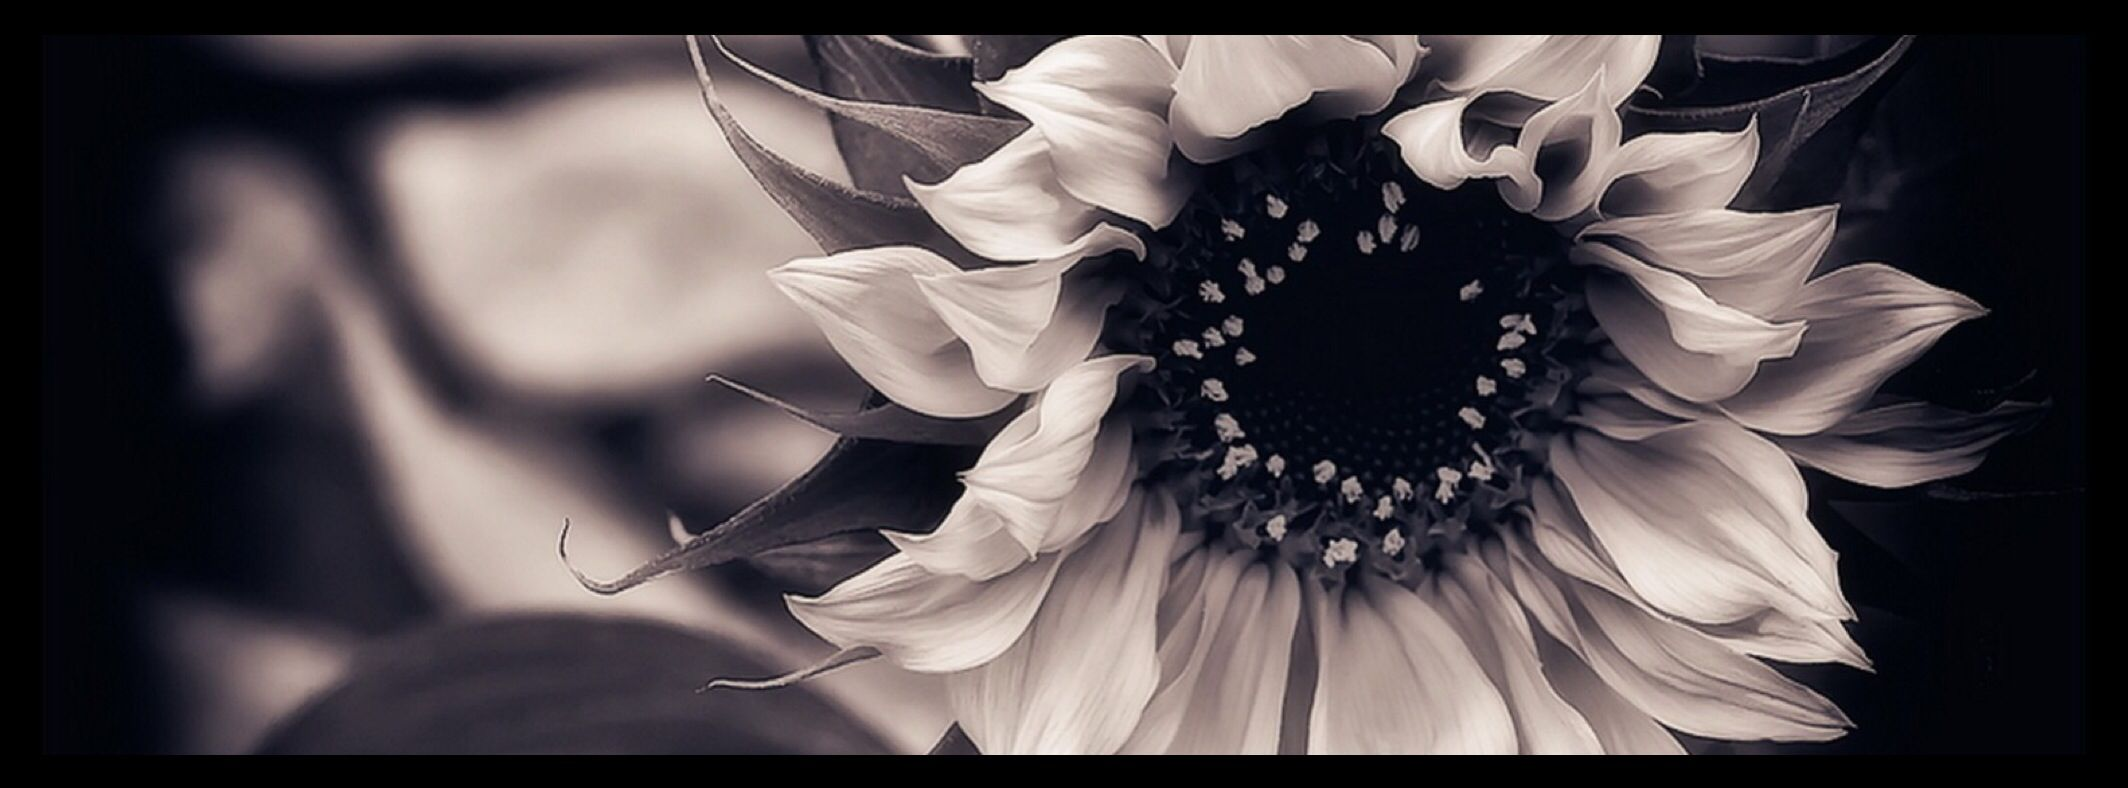 Black and white sunflower facebook cover photo